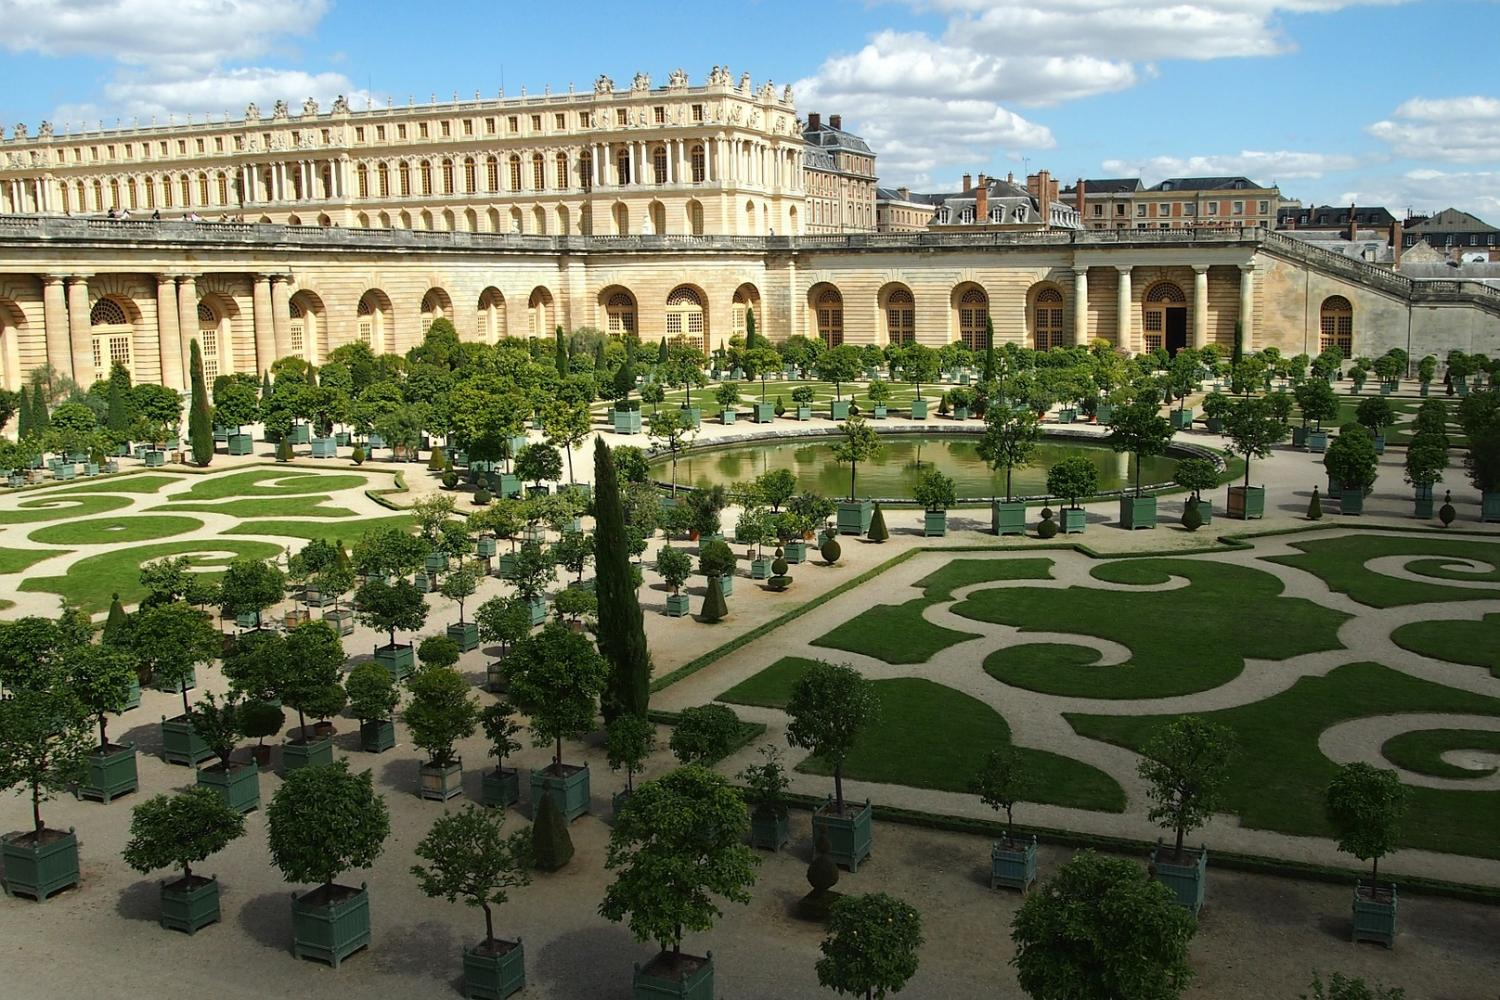 Visit the ornate halls of Versailles on a guided tour